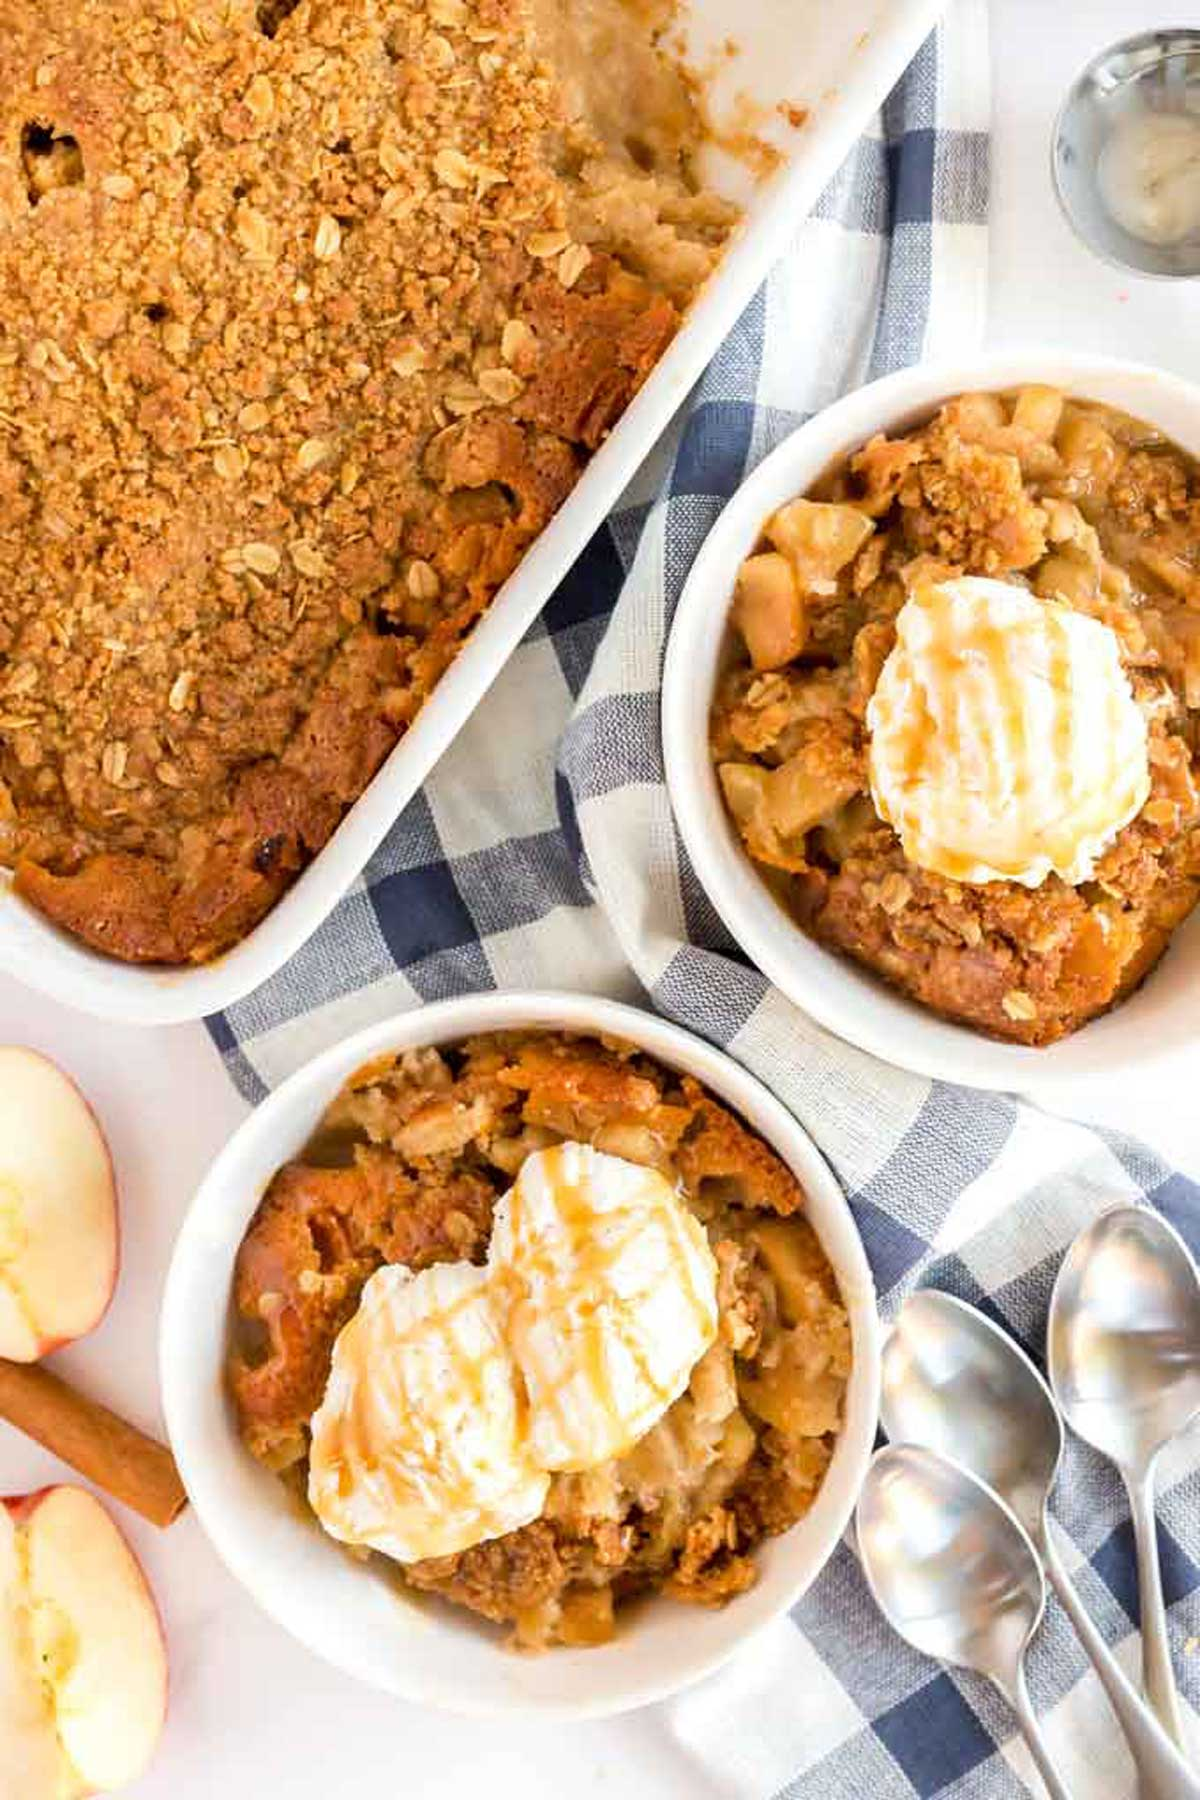 Bowls of apple crisp topped with vanilla ice cream